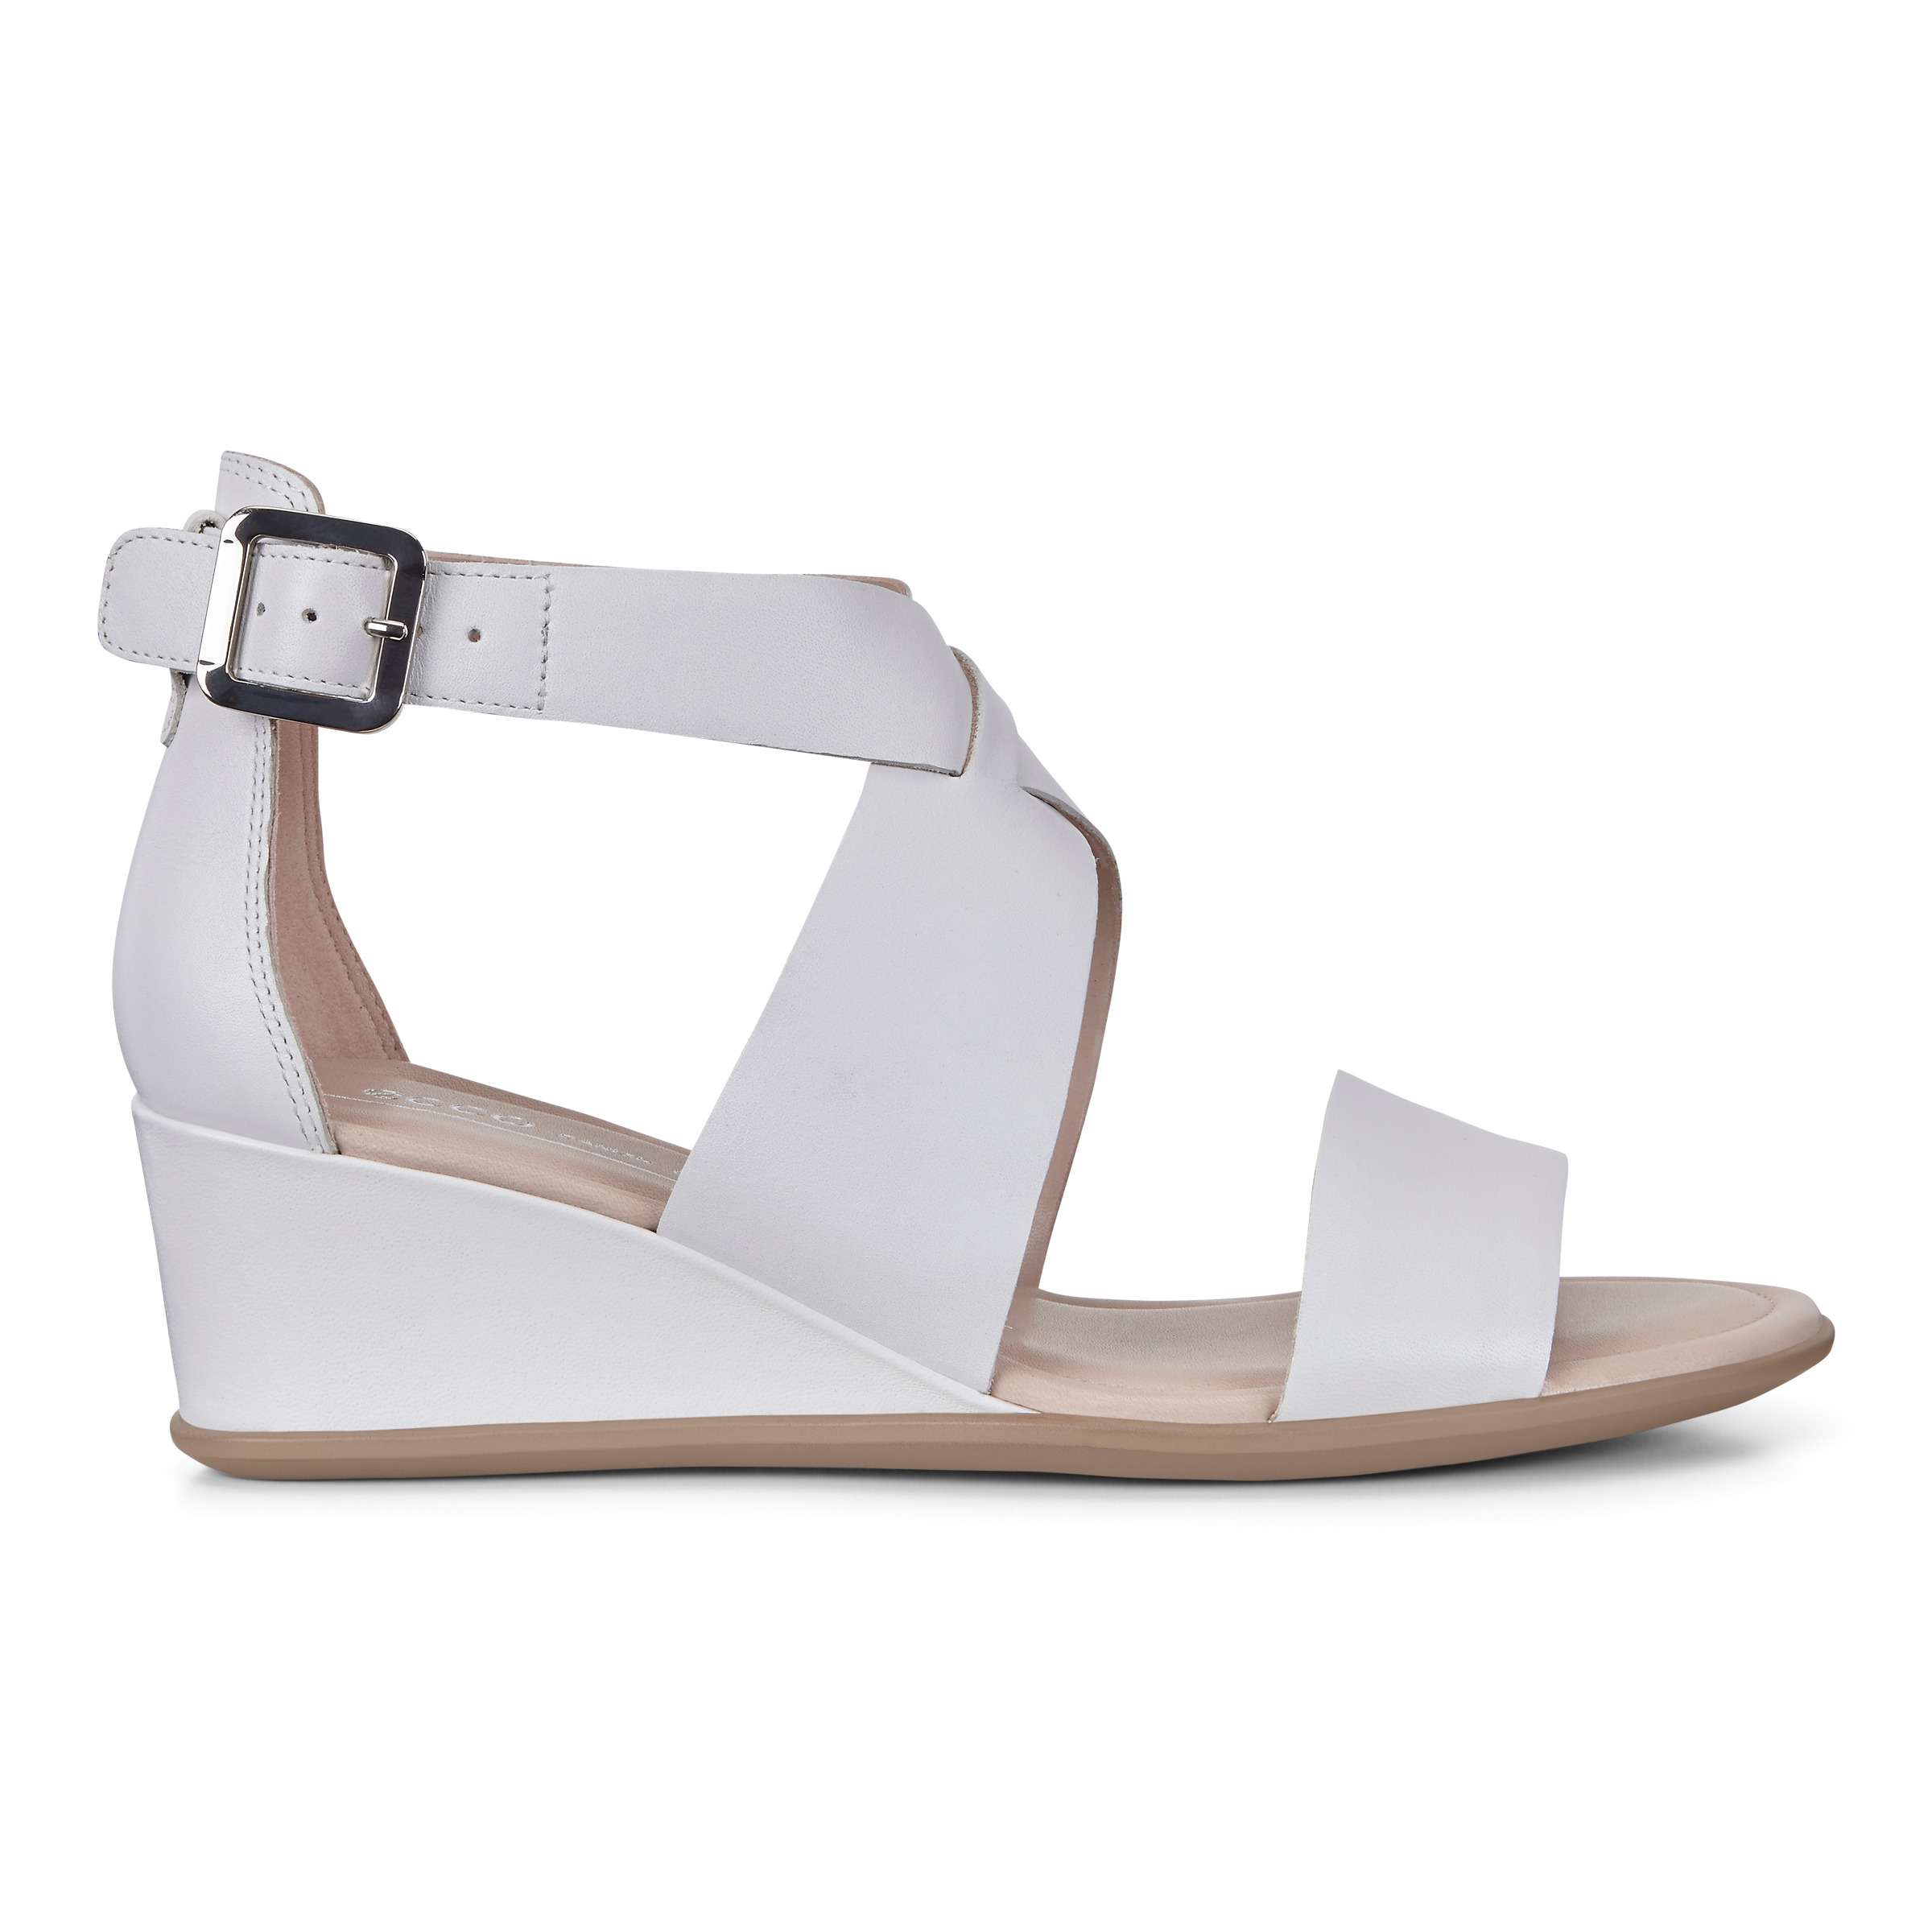 ECCO Shape 35 Wedge Ankle Sandals Size 8-8.5 Bright White